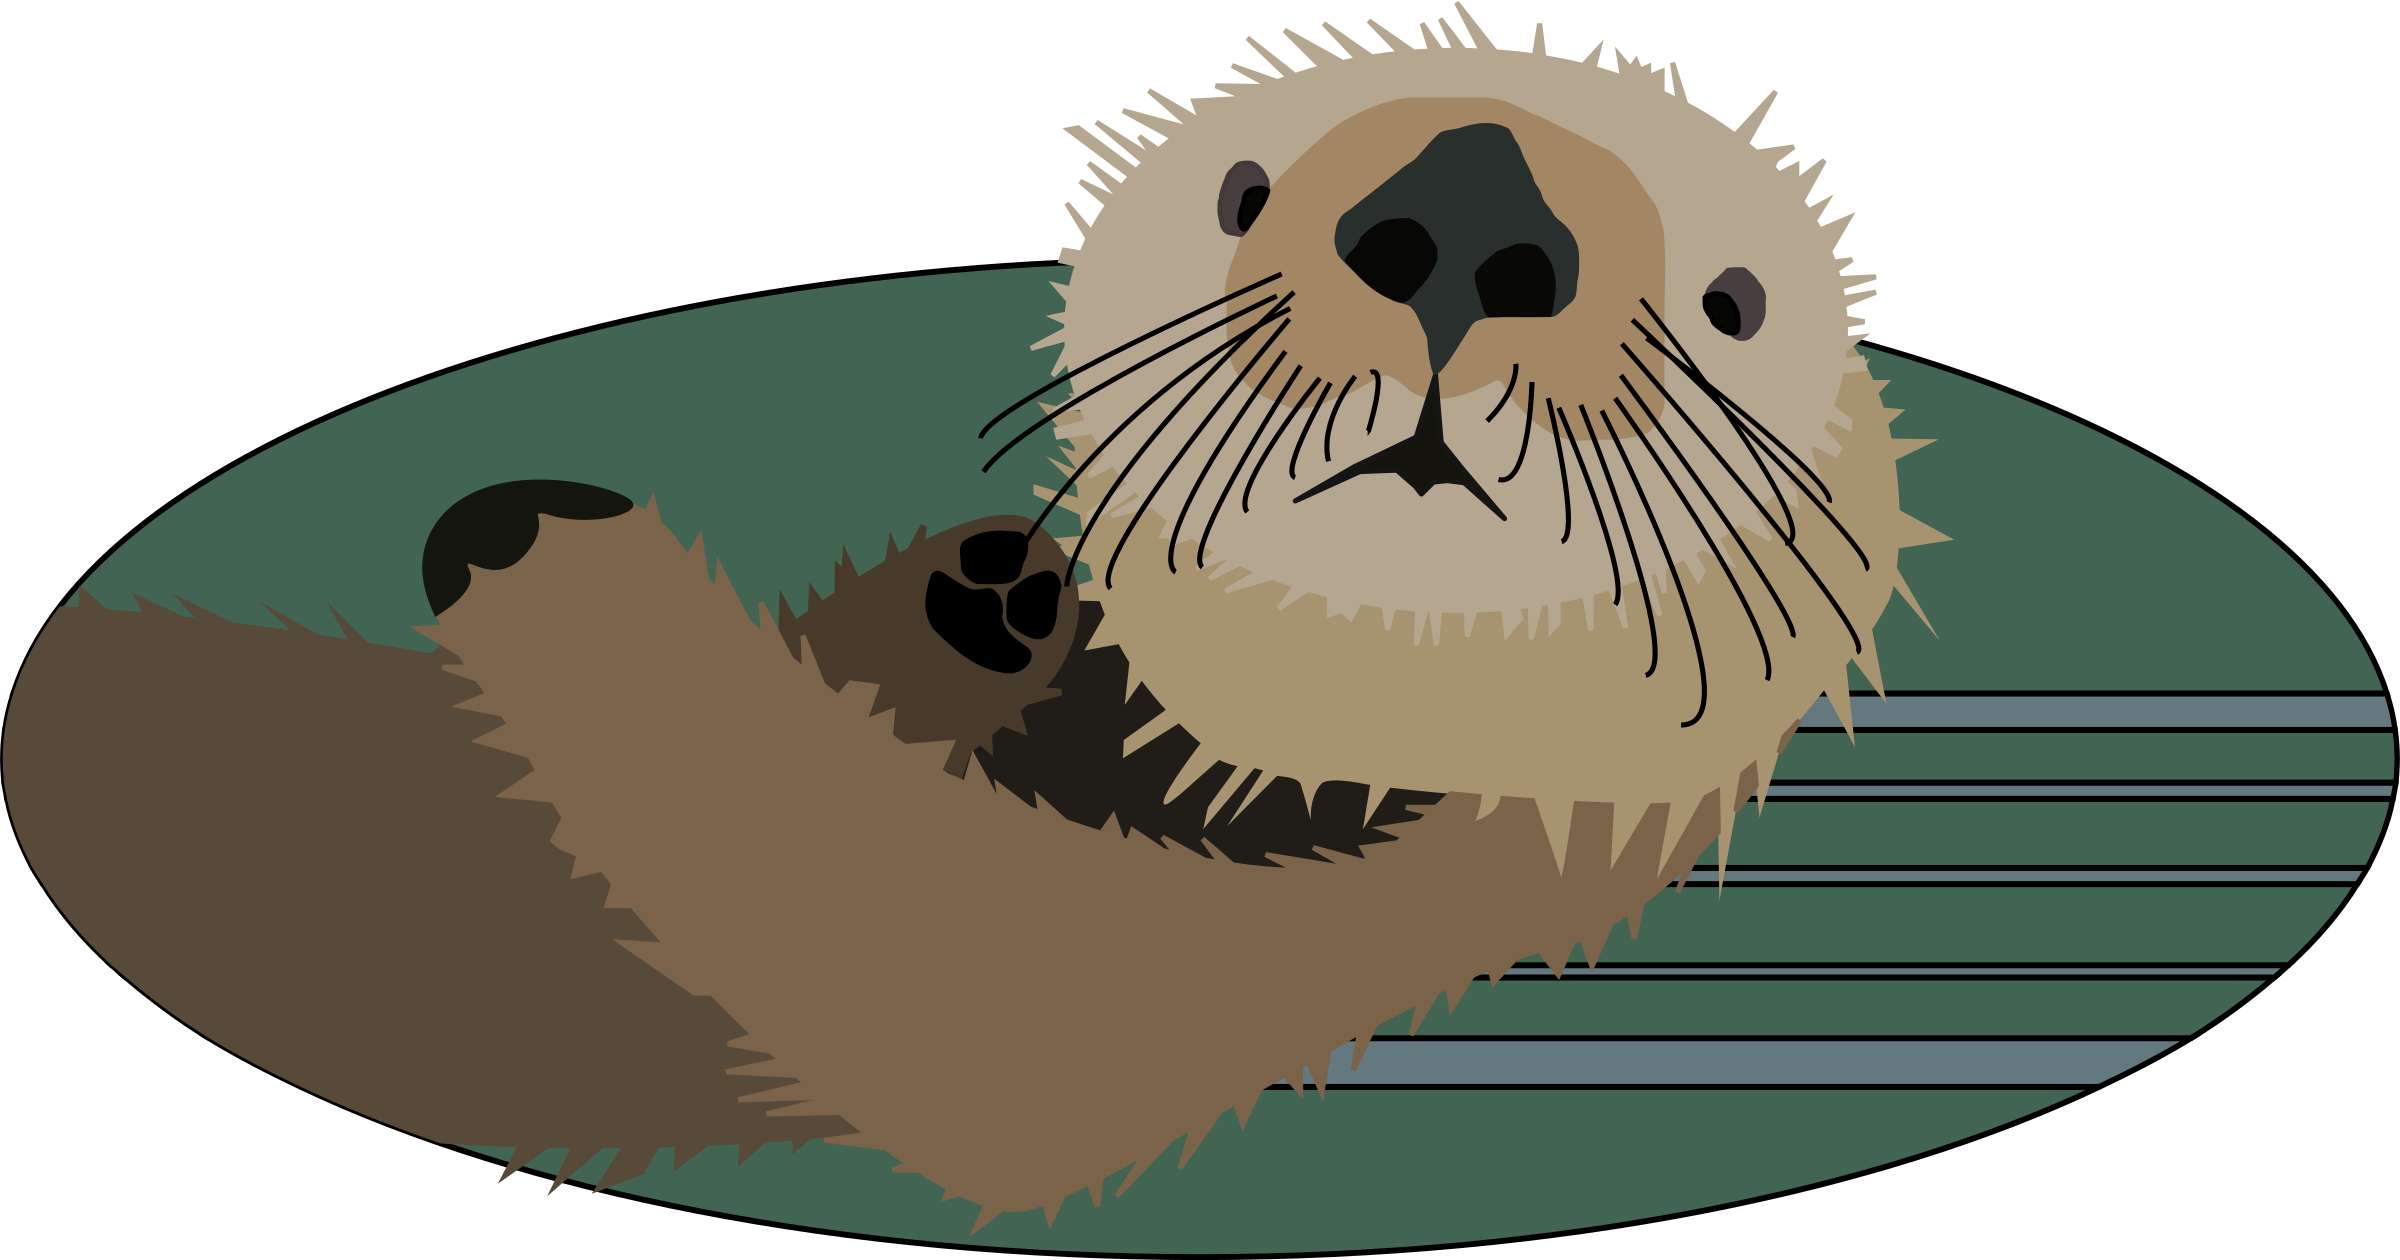 Sea otters clipart png royalty free Clipart - Sea otter | Northwest Coast Native Art | Sea otter ... png royalty free